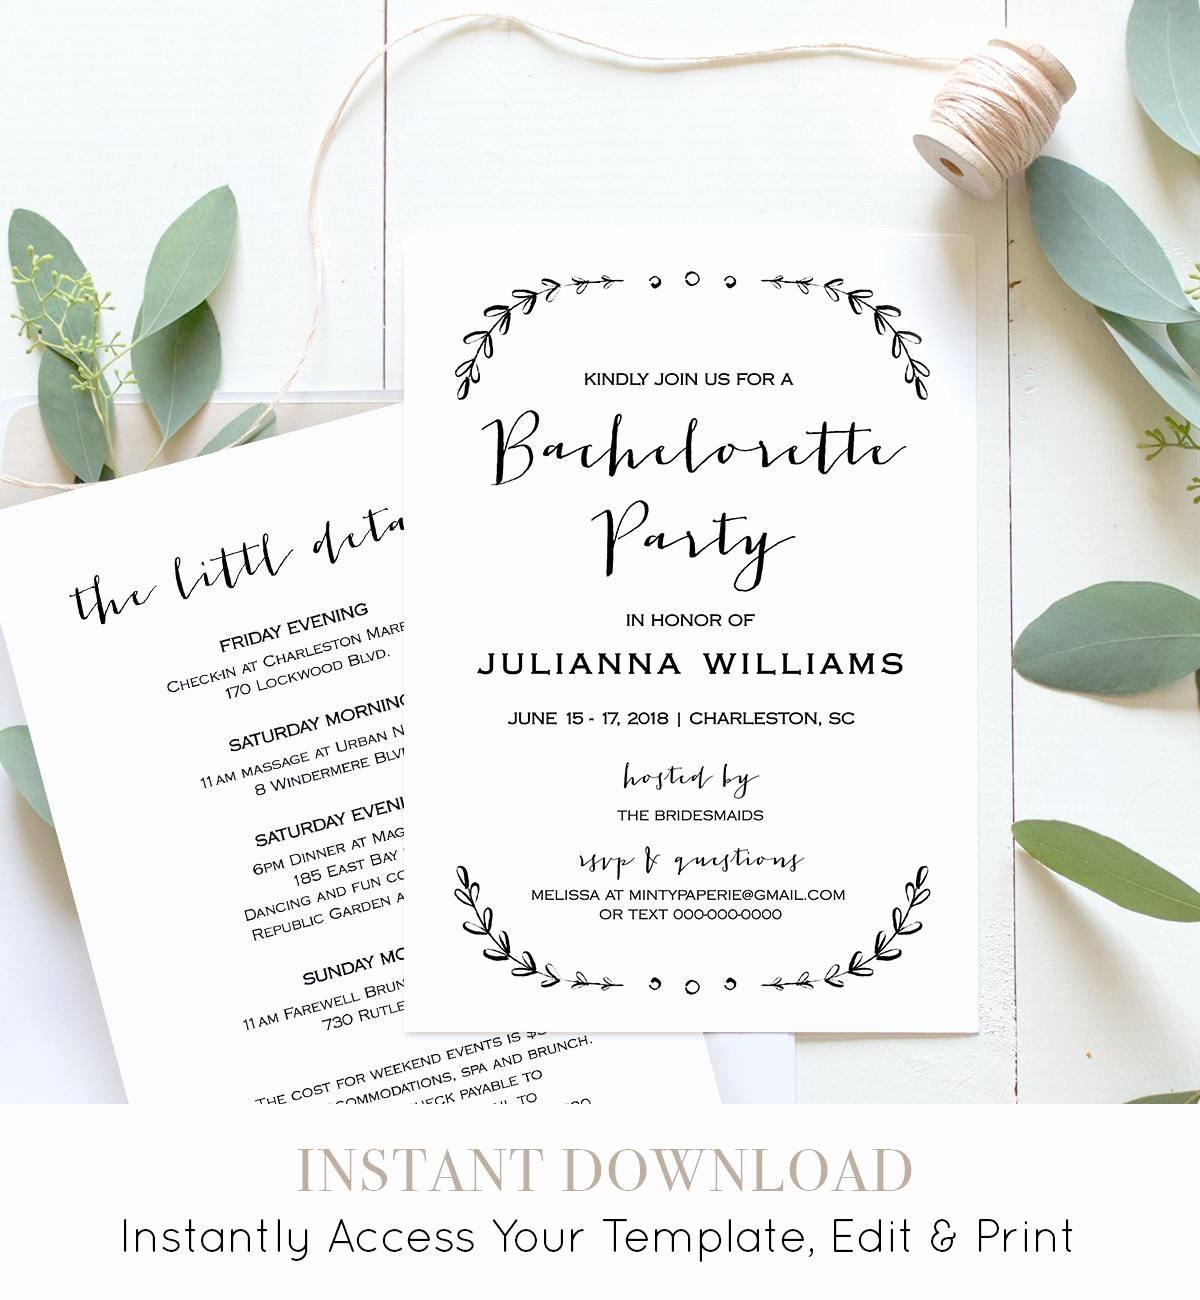 Bachelorette Party Invitation Template Printable Rustic